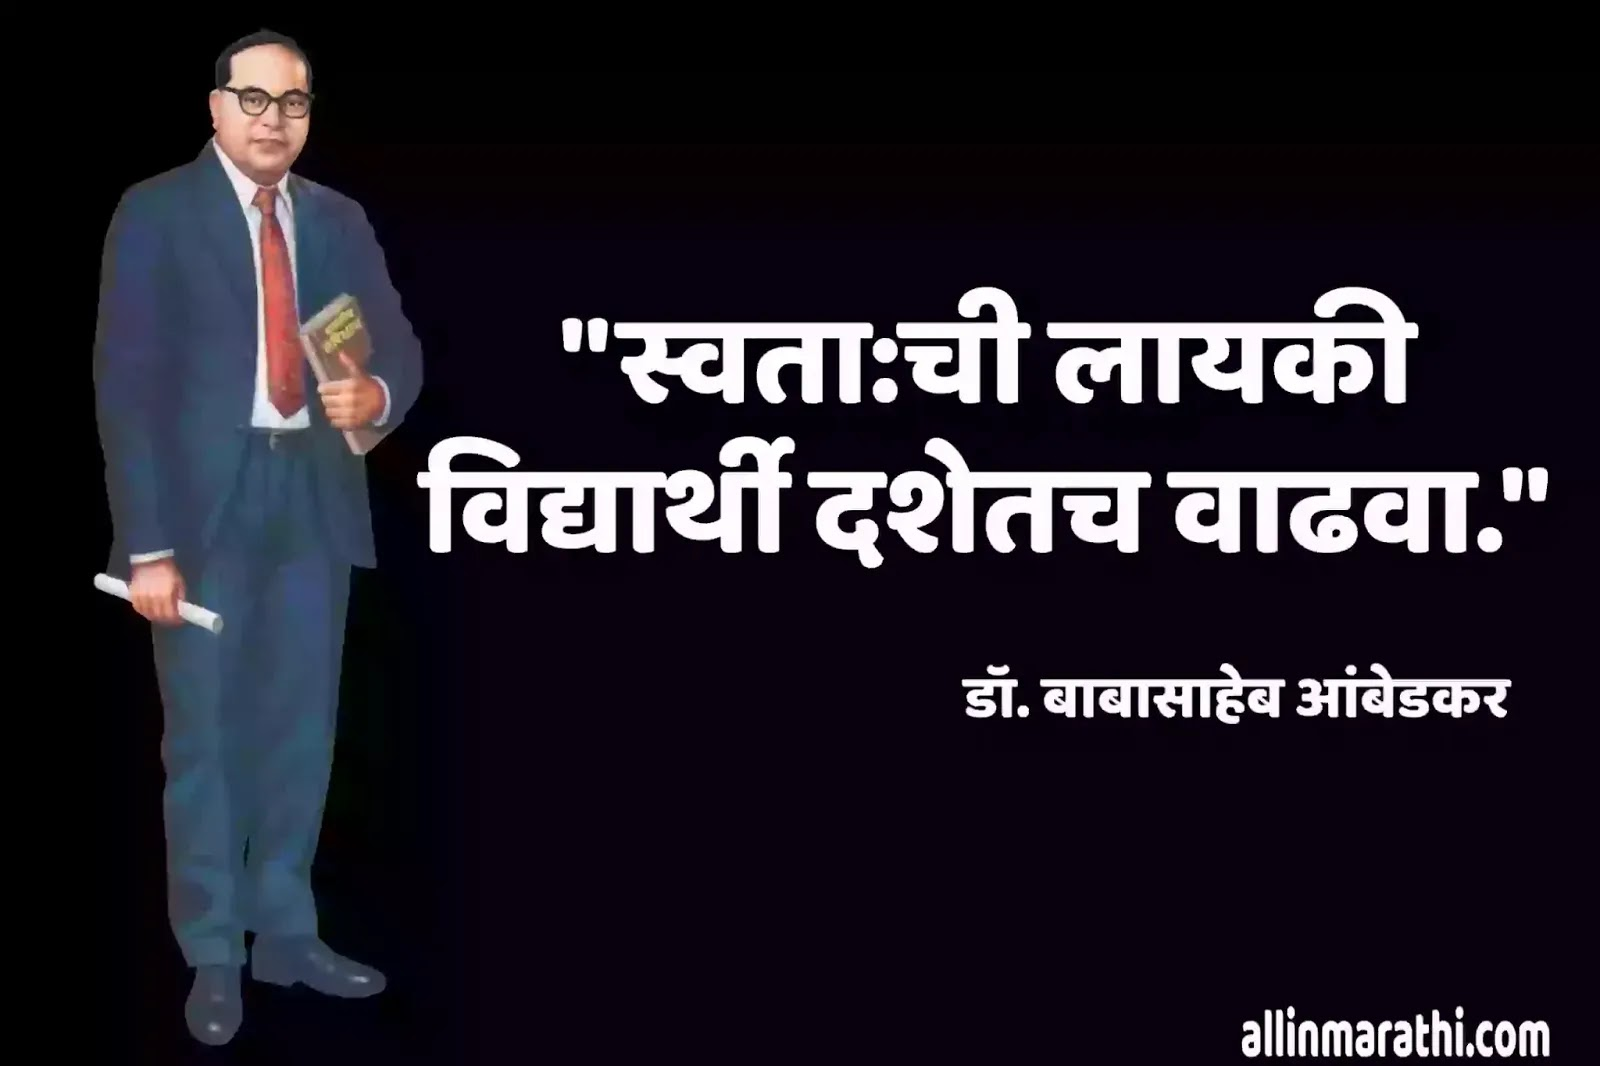 Dr.babasaheb ambedkar Motivational Quotes for students